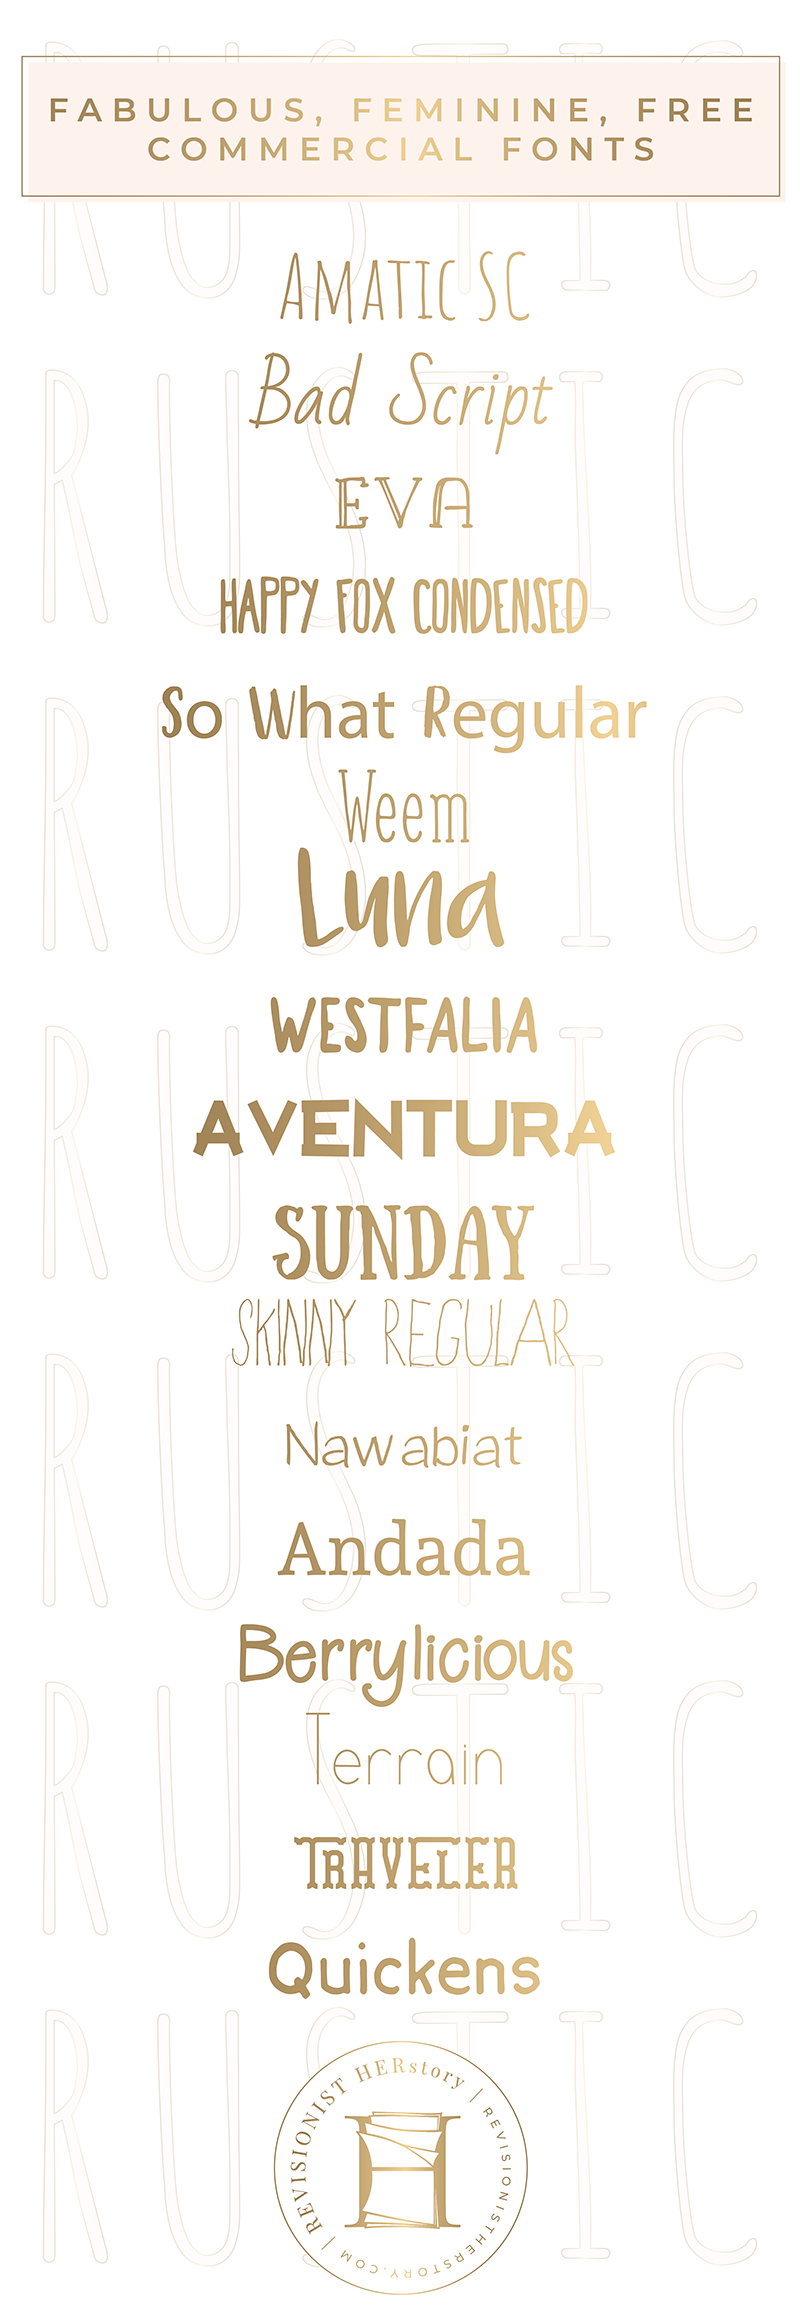 The best free rustic fonts for commercial use in 2018